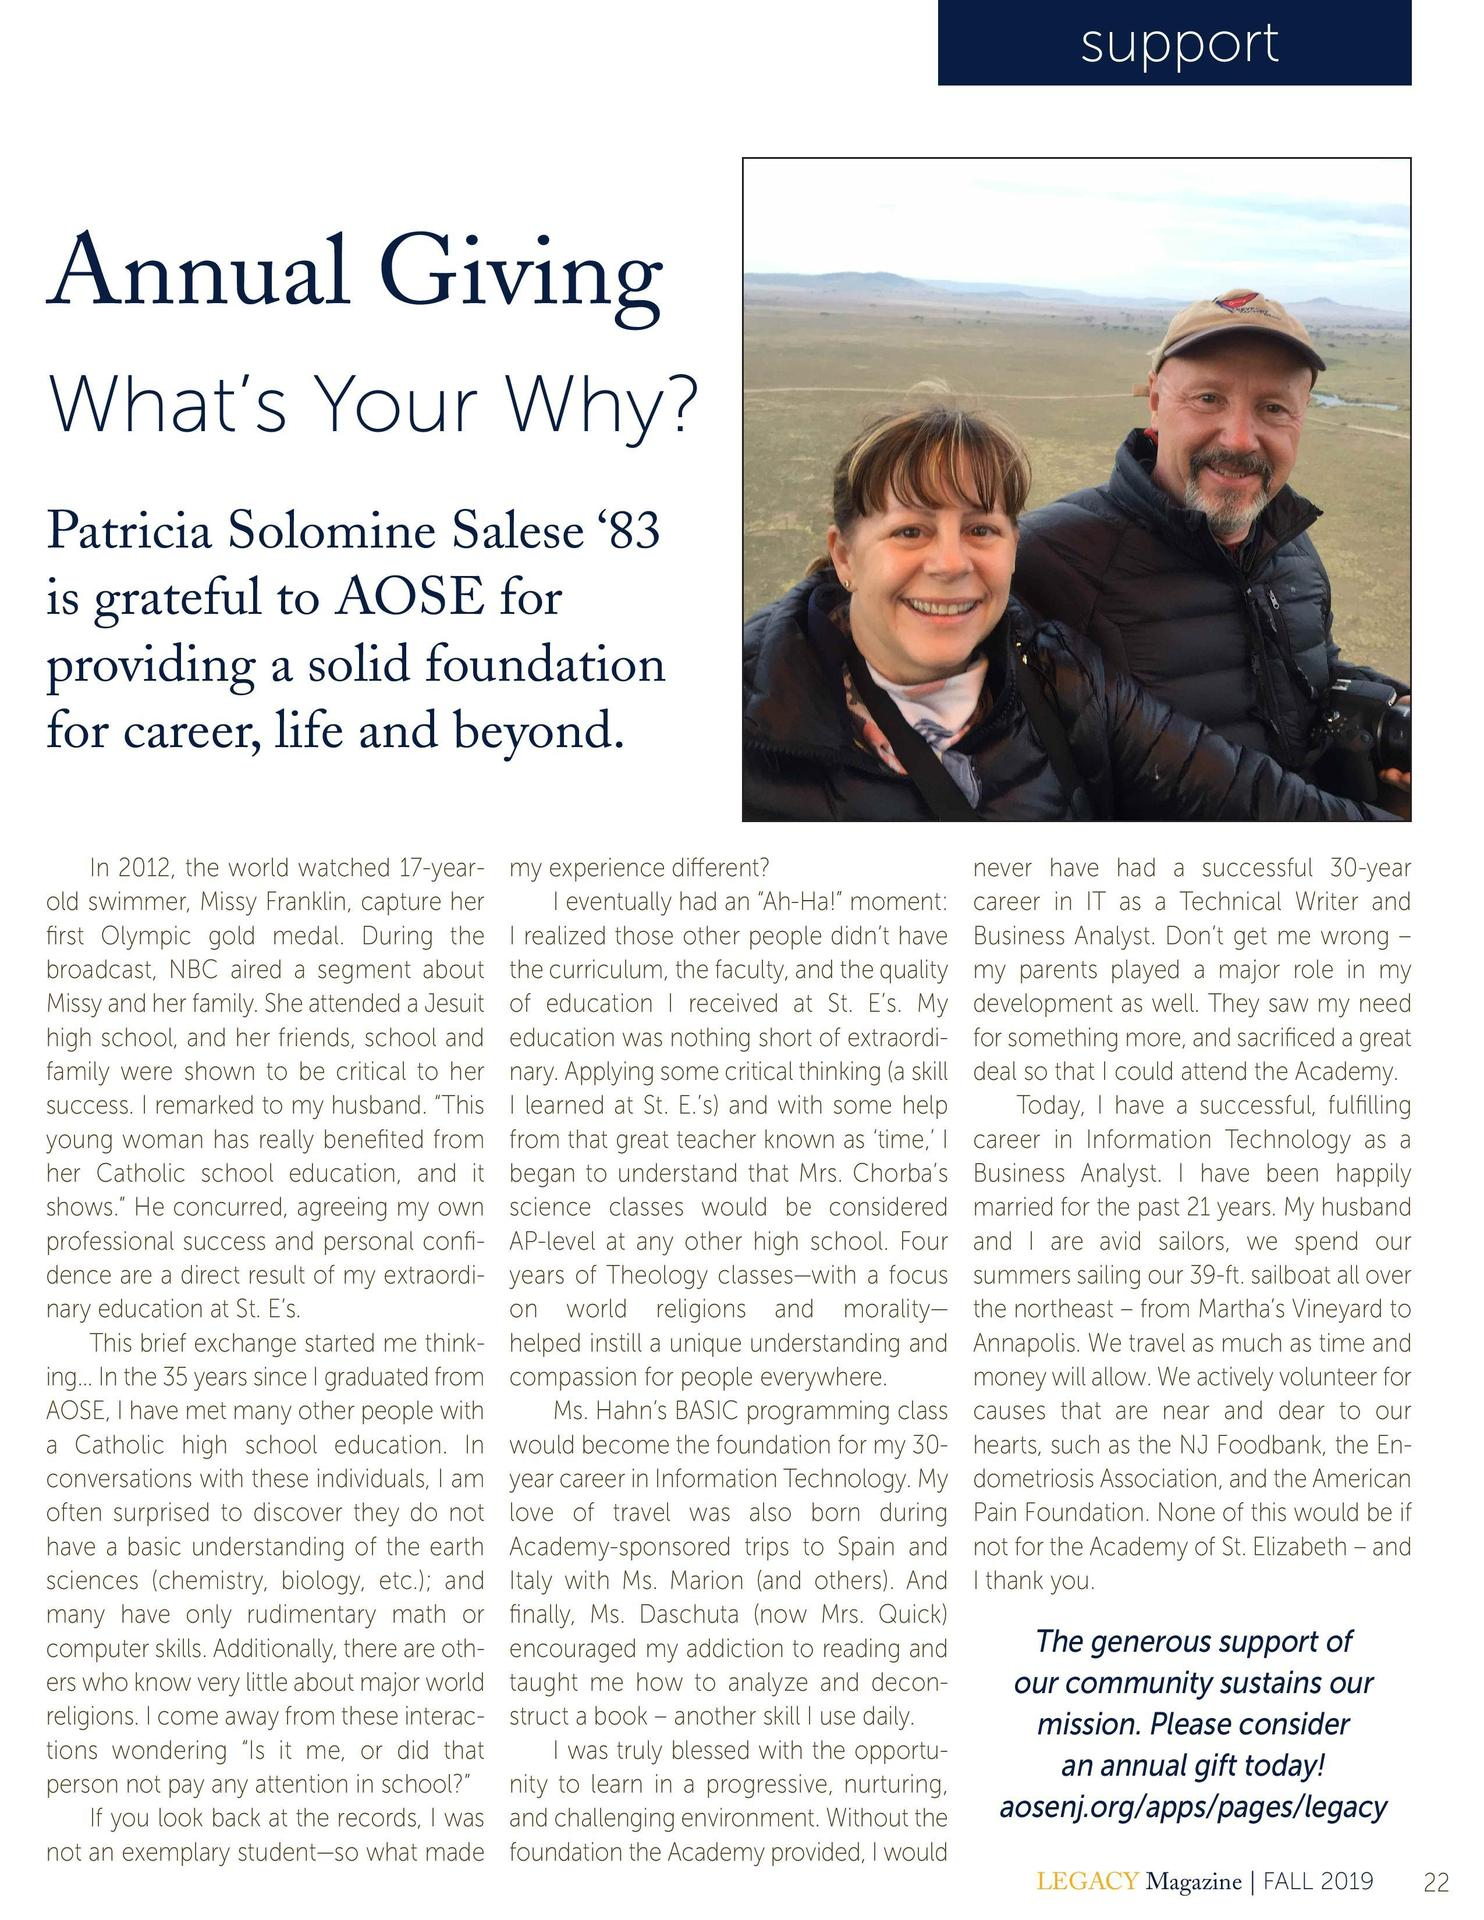 Legacy Magazine Annual Giving Letter